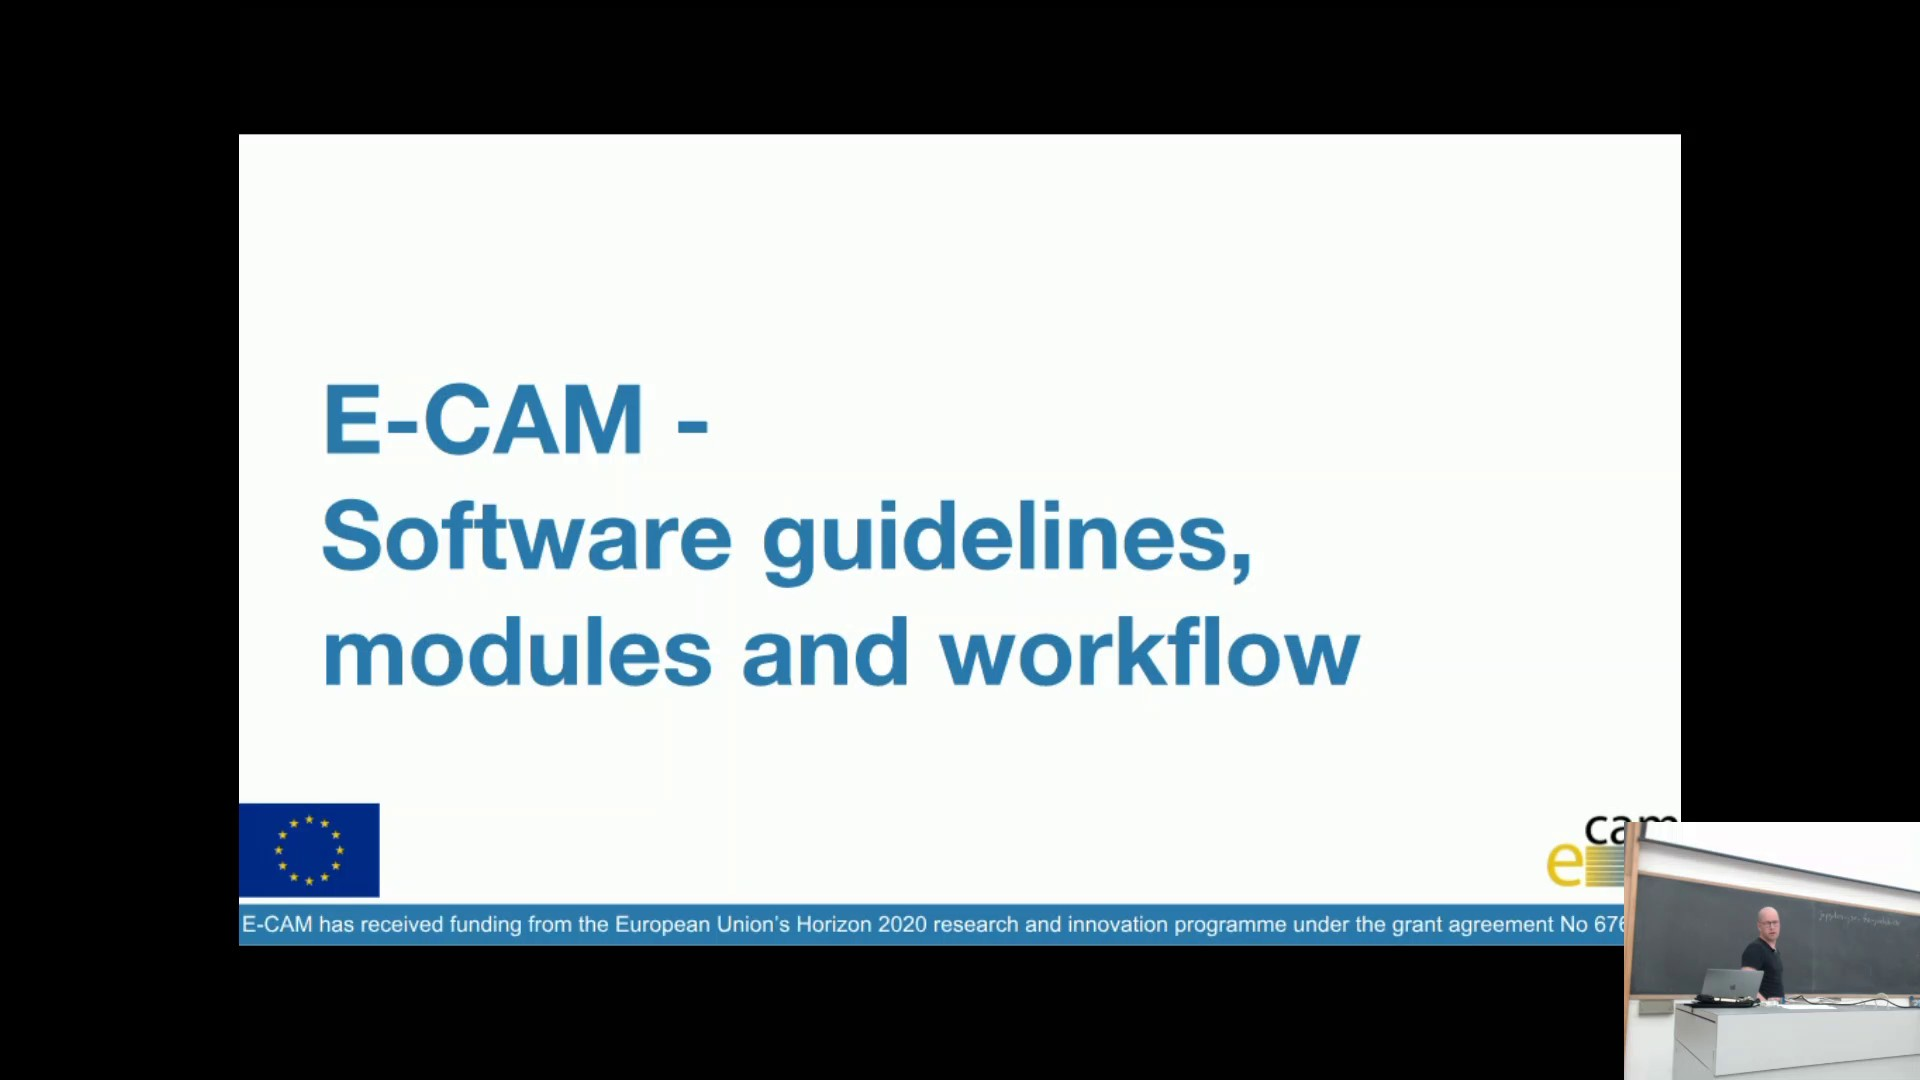 Thumbnail of E-CAM Software Guidelines and Workflow